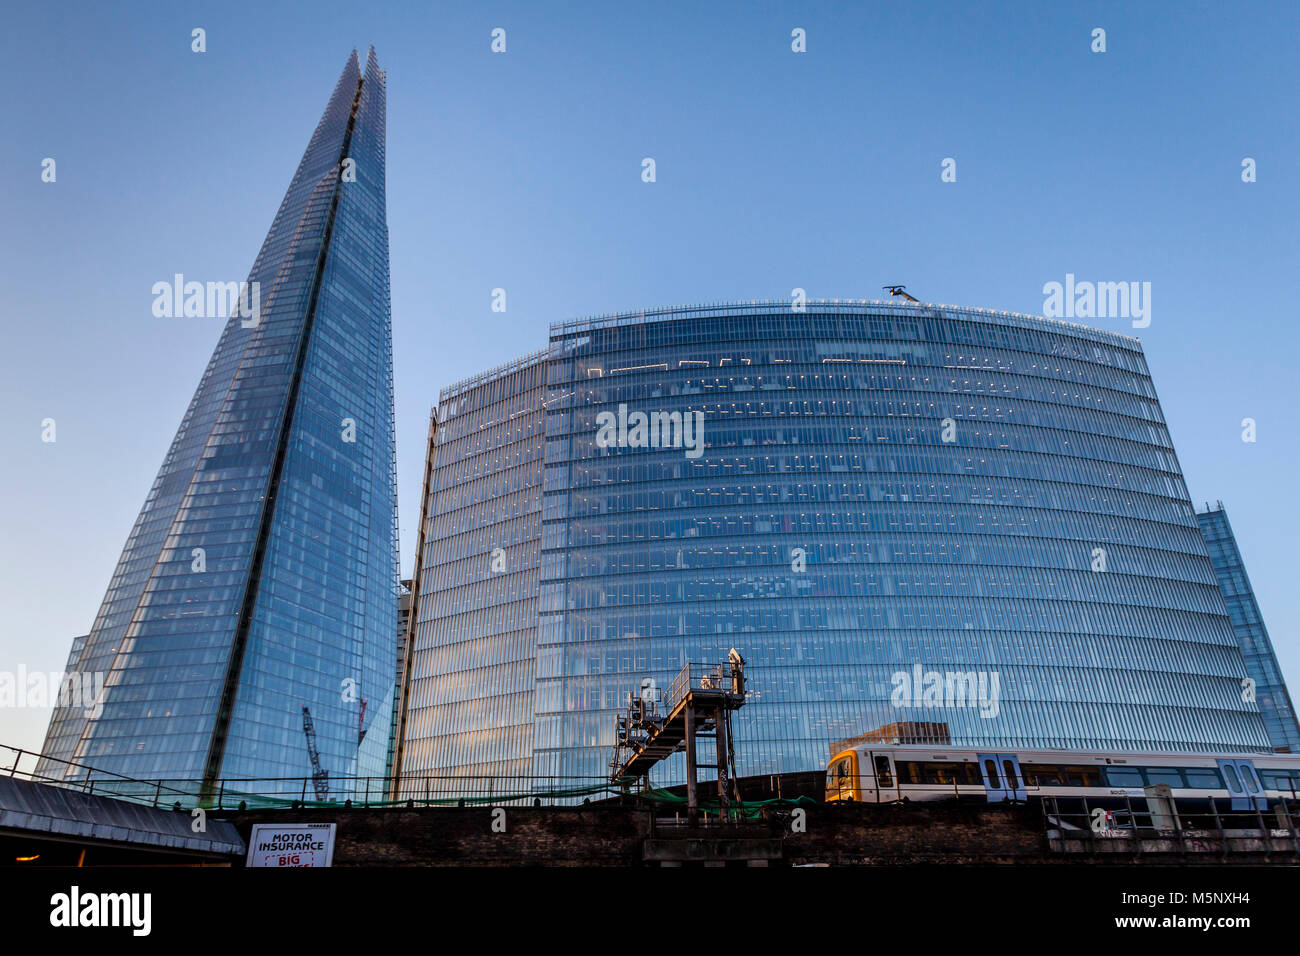 Un tren de cercanías pasa el Shard y el edificio de noticias, London Bridge Quarter, Londres, Reino Unido. Imagen De Stock